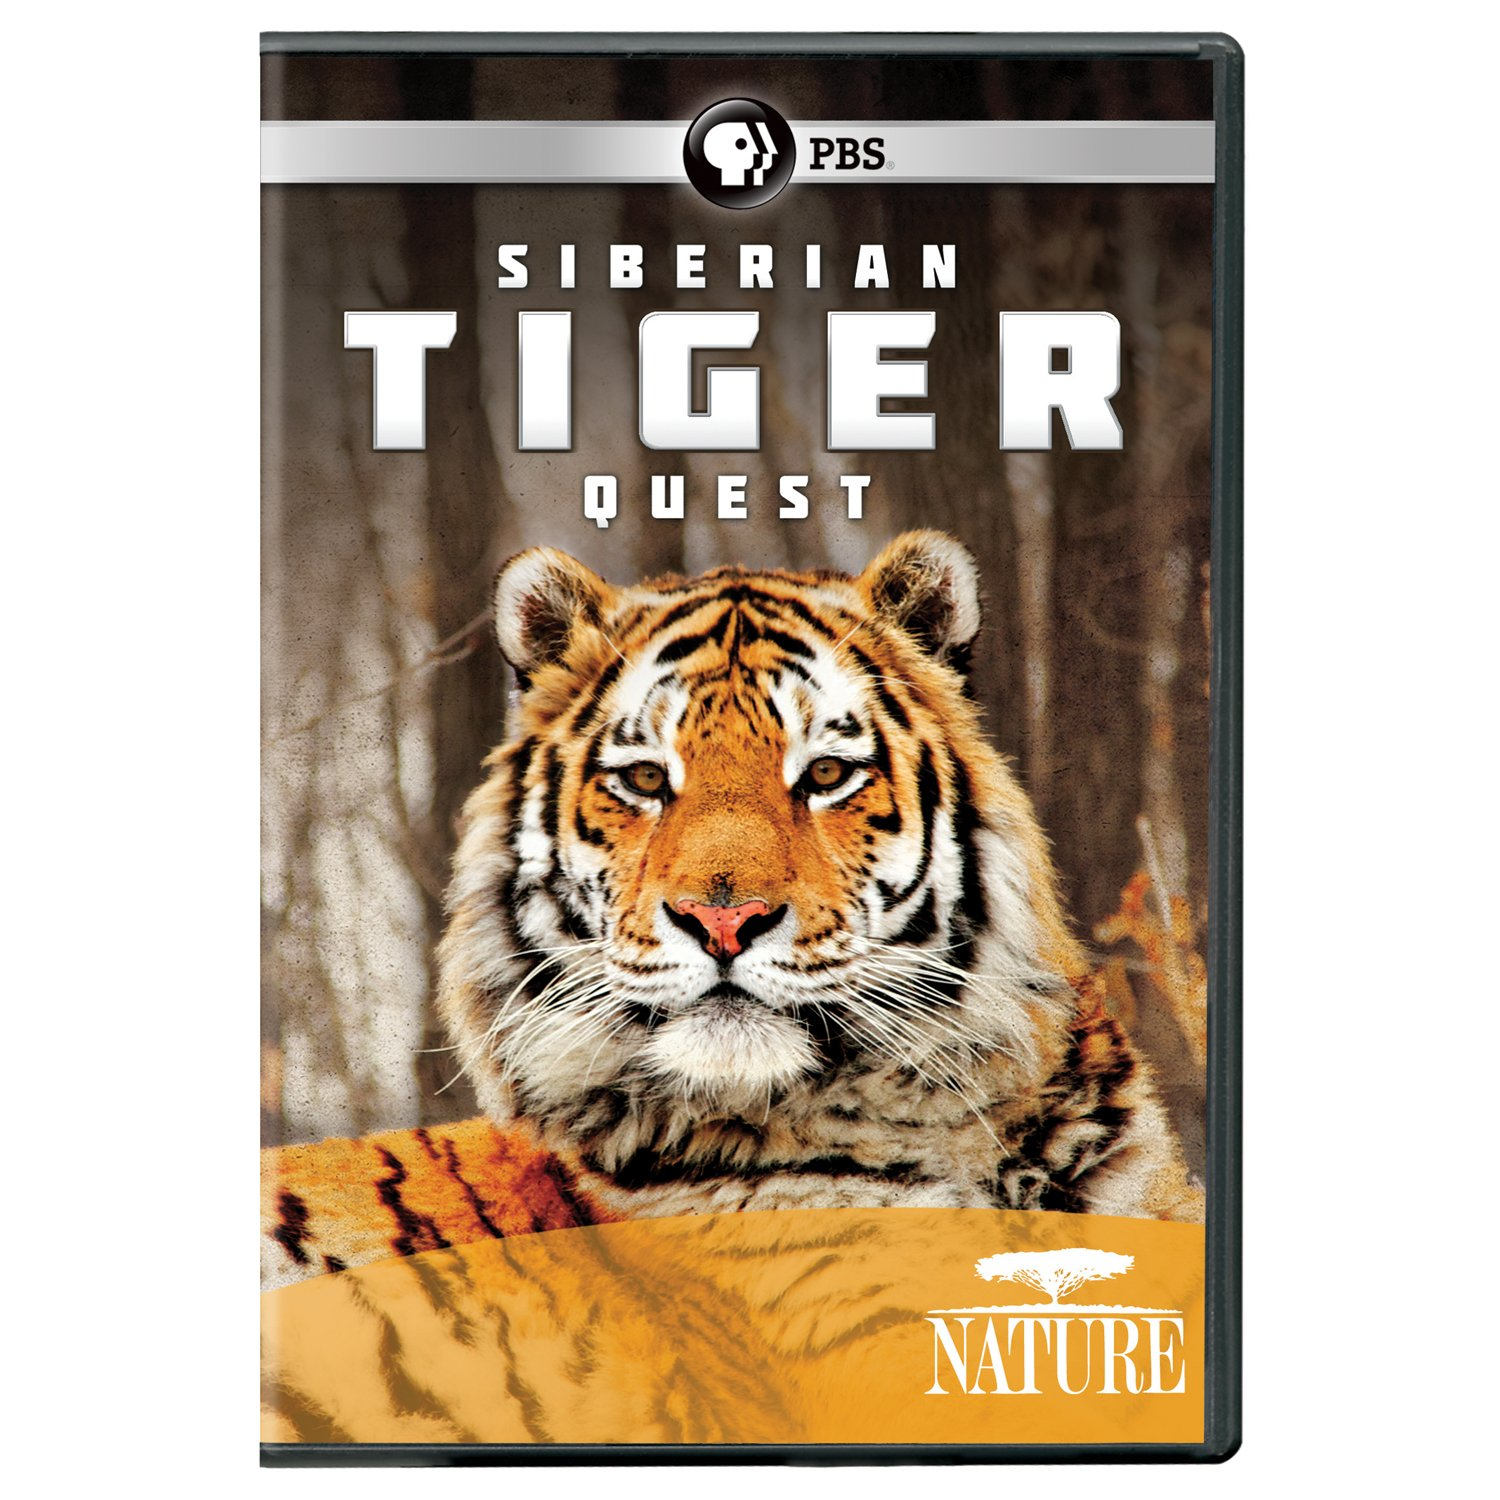 Siberian Tiger Quest (PBS 2012)